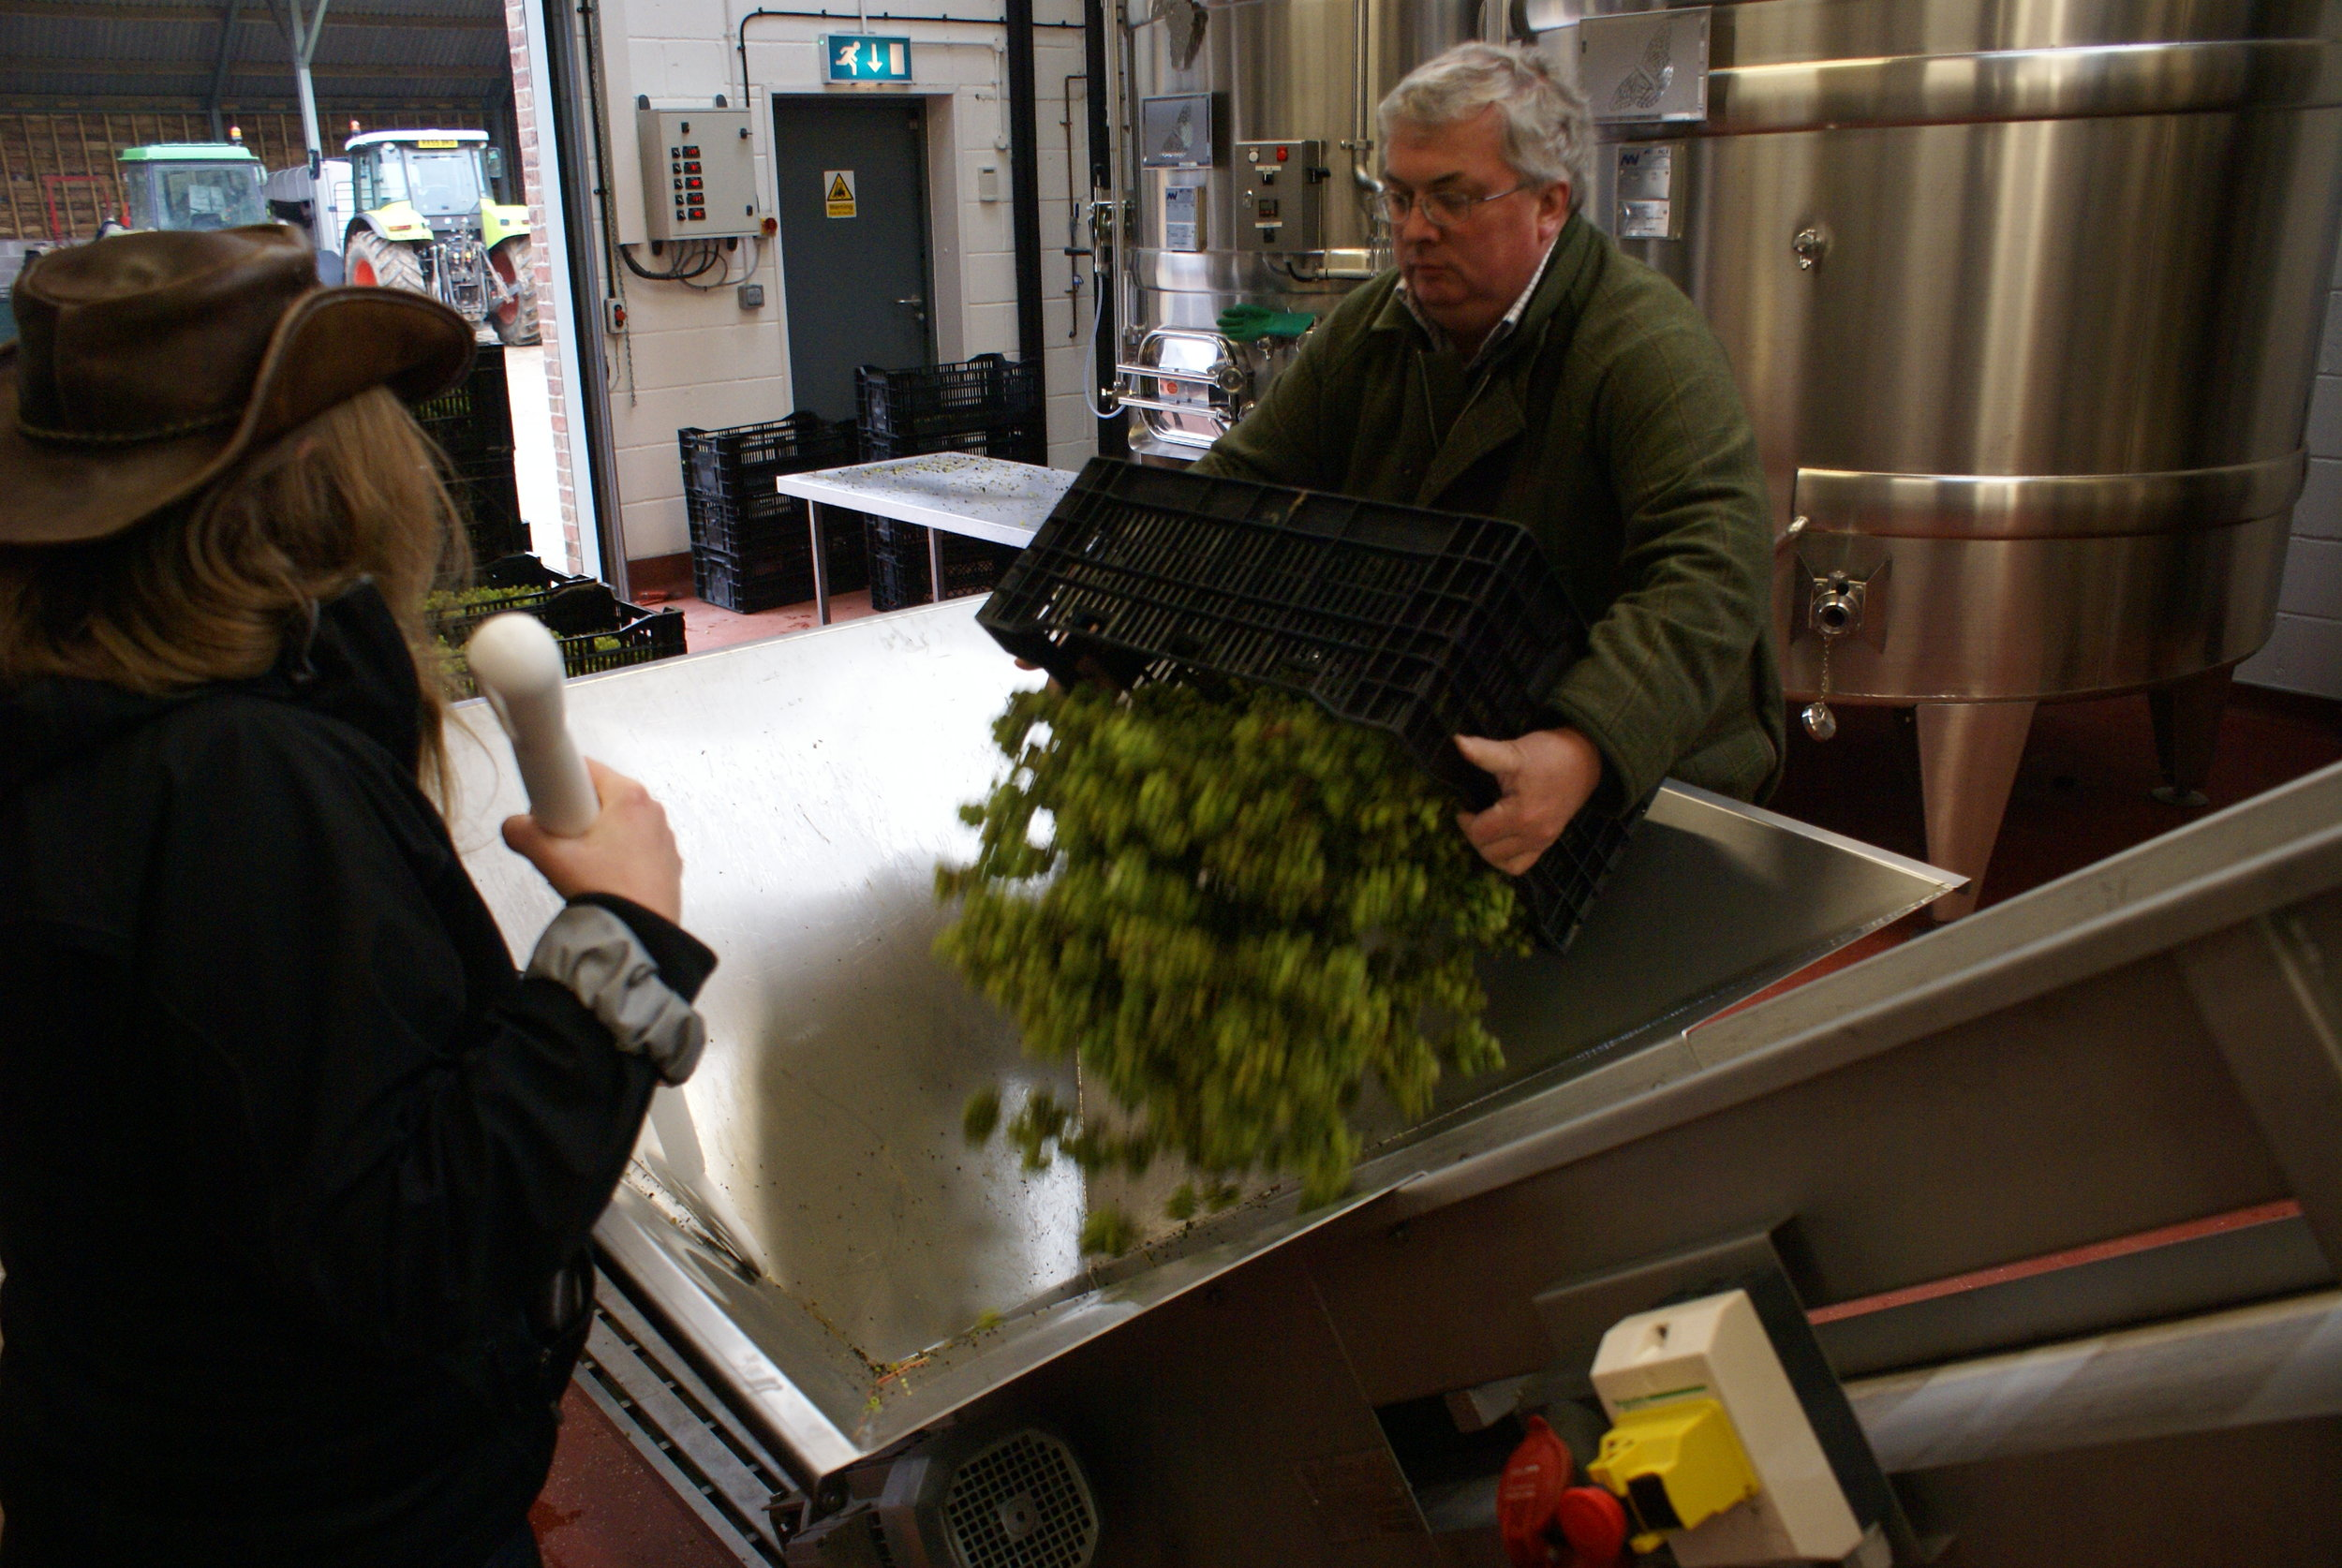 2. Loading the Press - Grapes are gently loaded into the press viaa conveyor belt and sorted for quality.